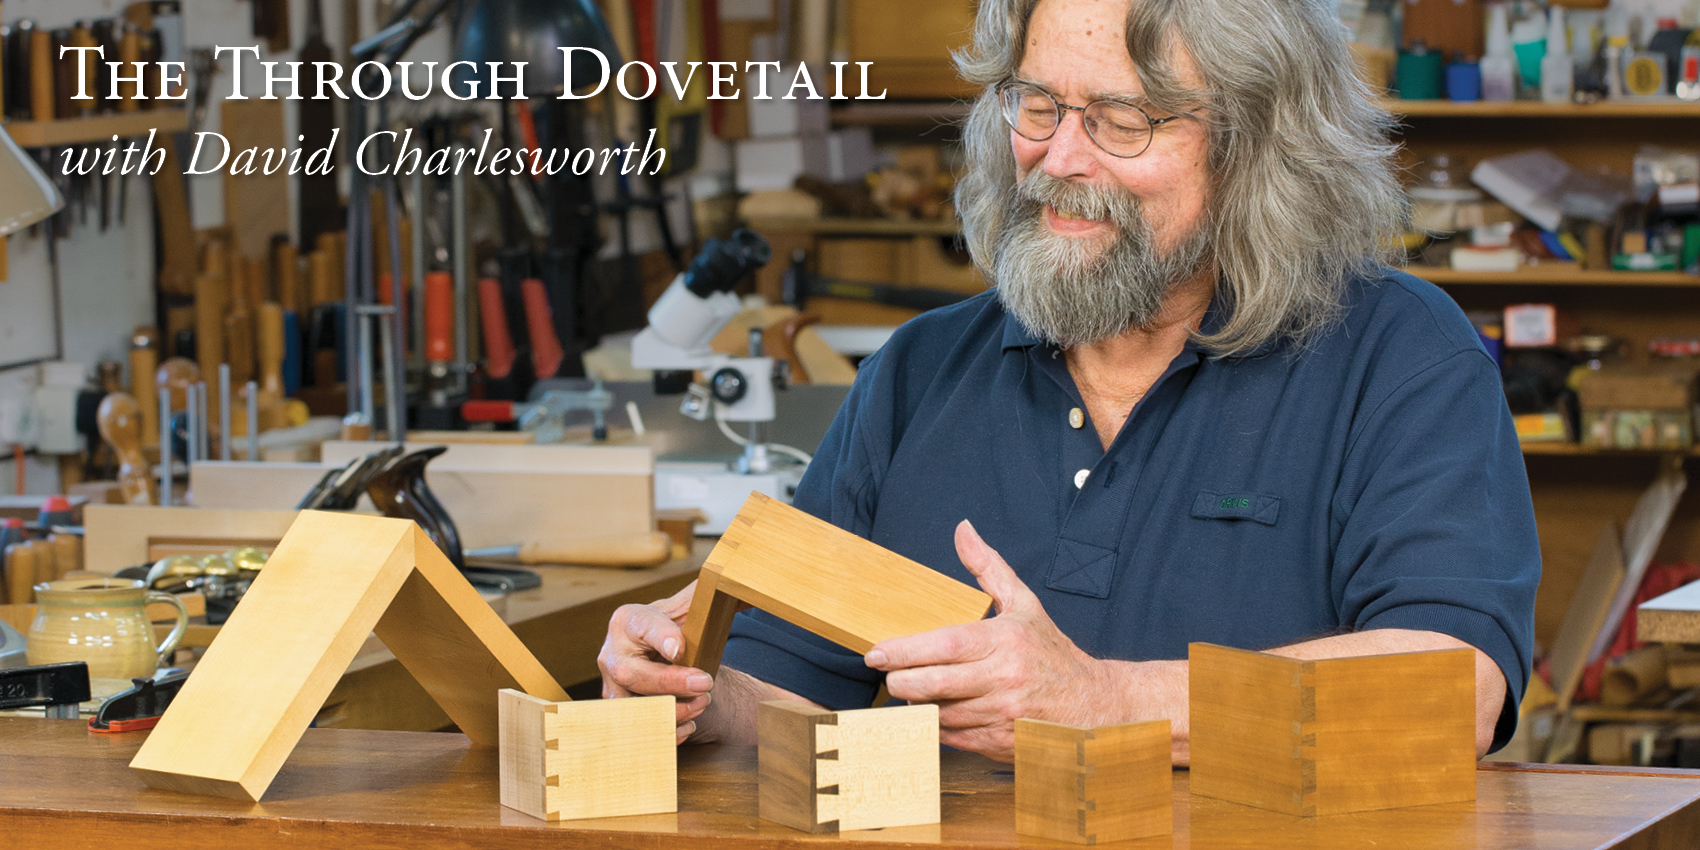 The Through Dovetail with David Charlesworth